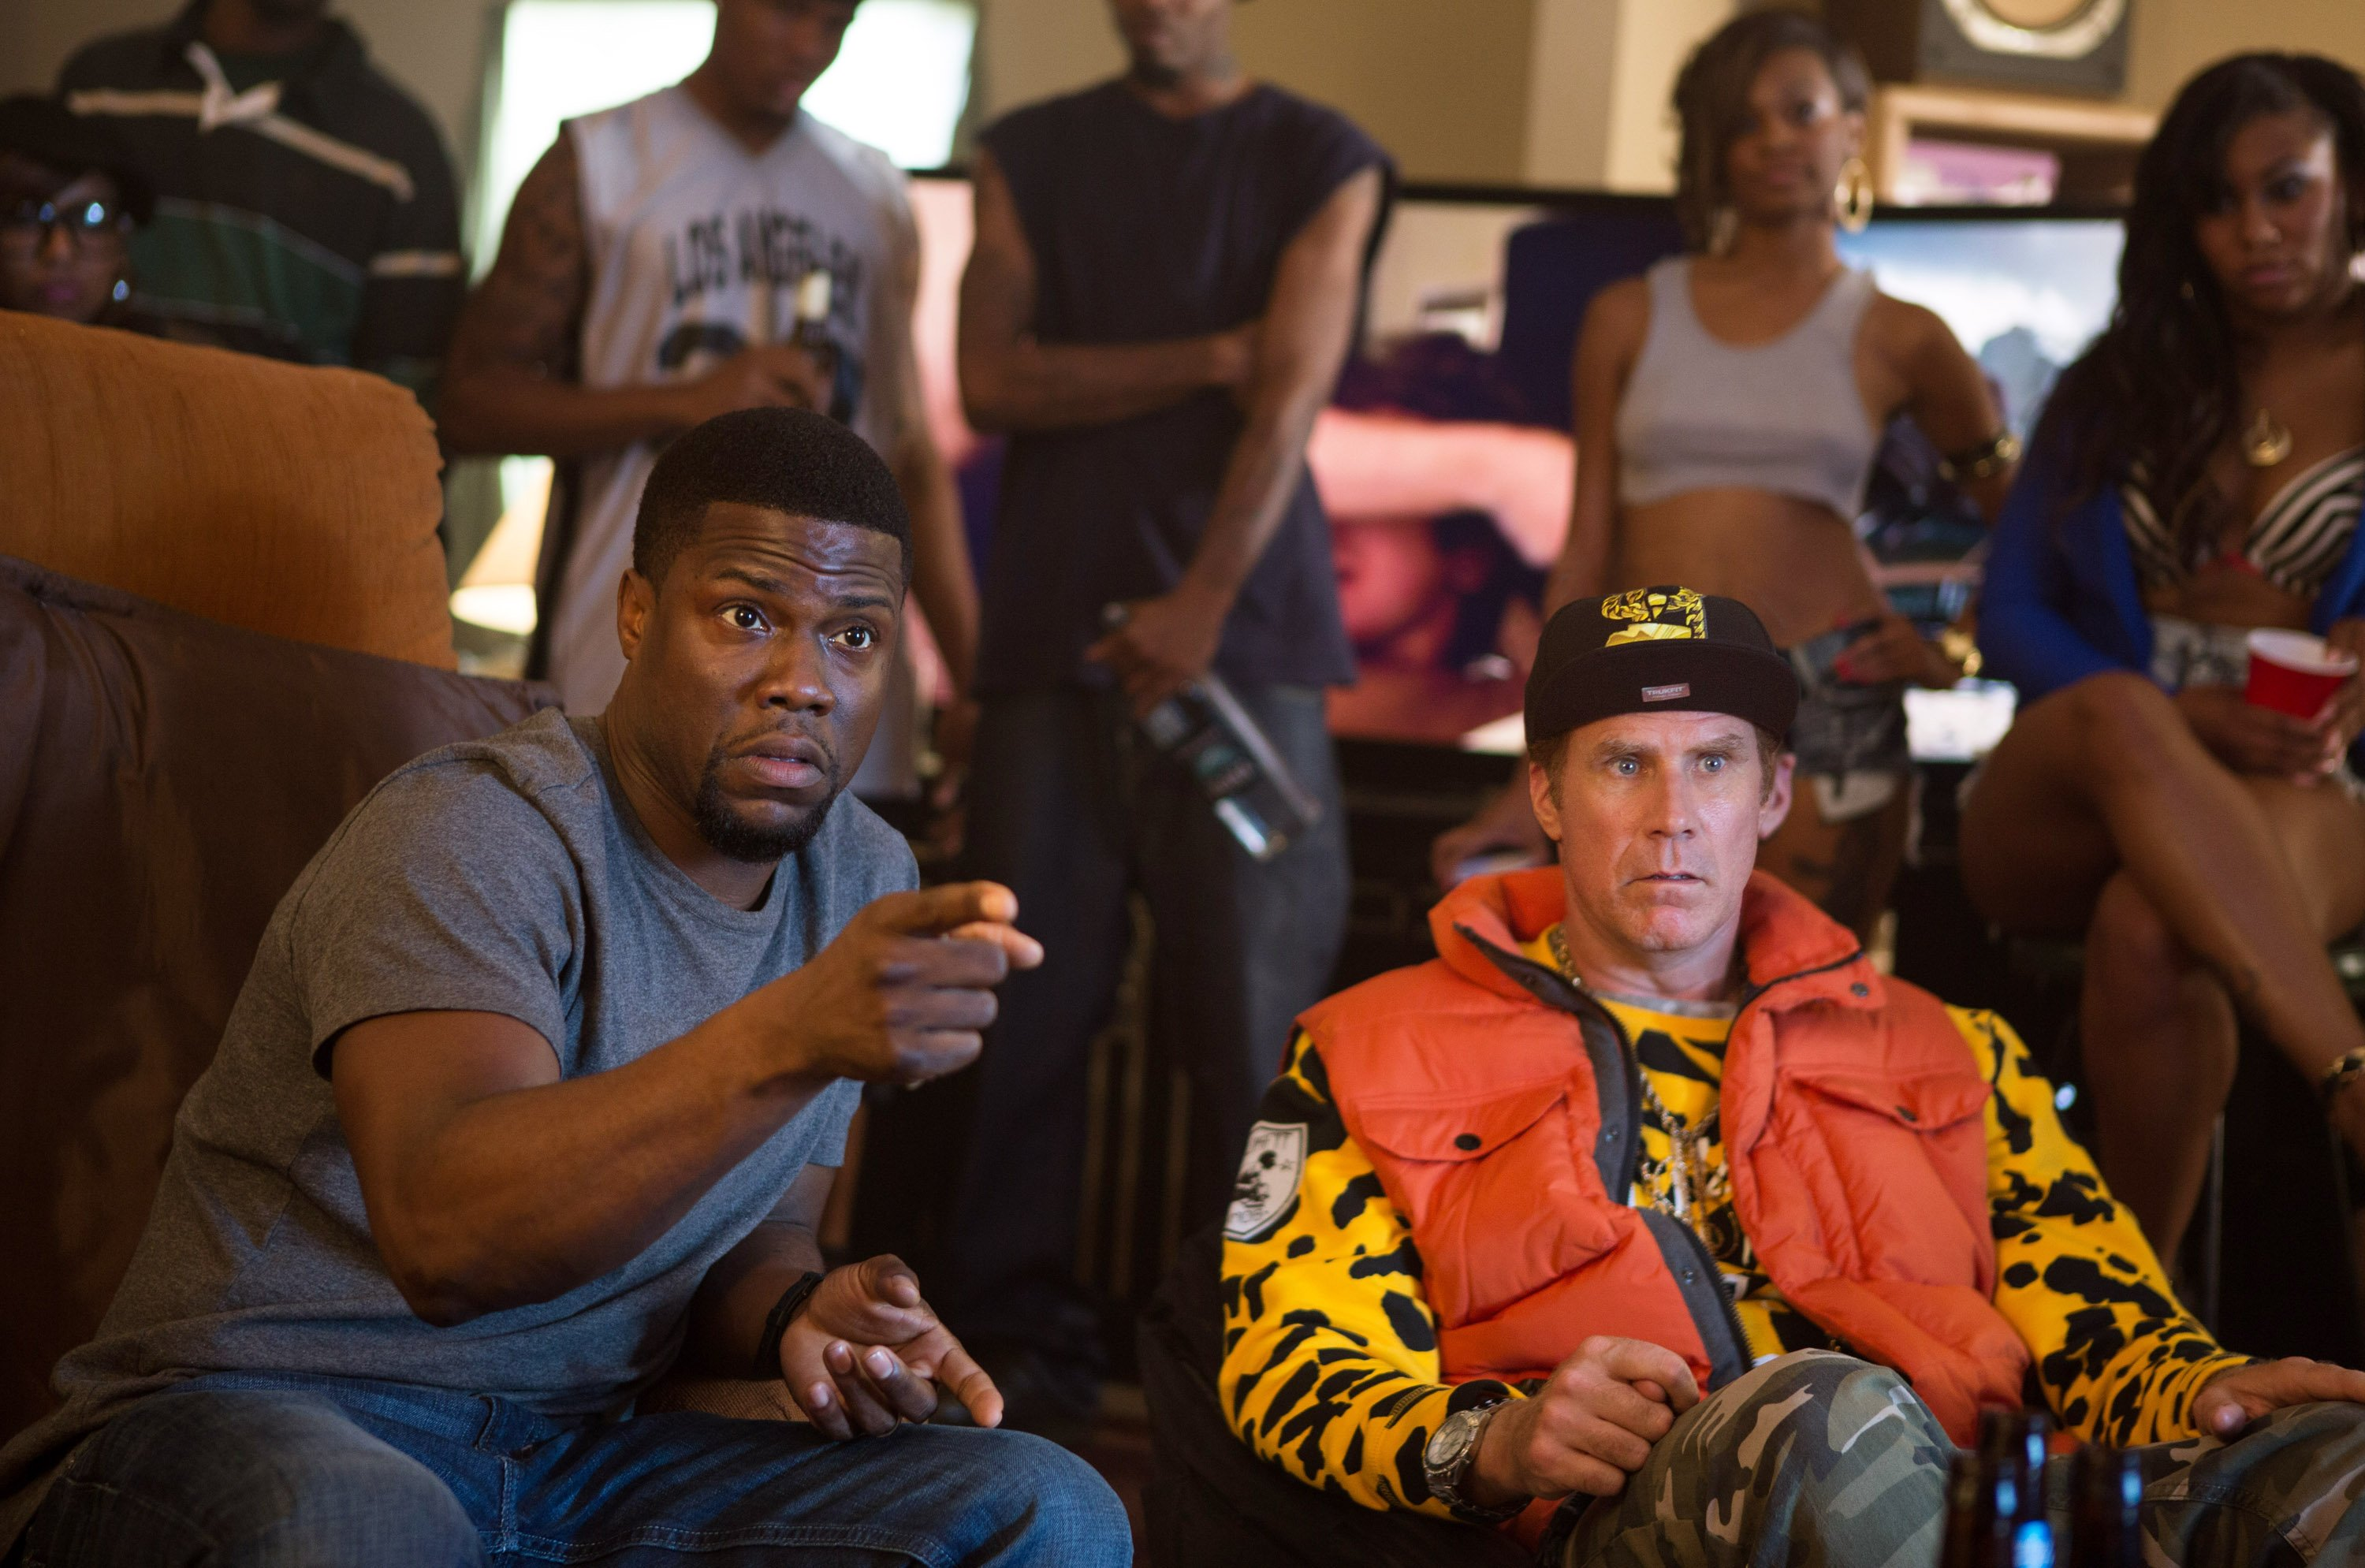 Get Hard' is a funny enough distraction | Cinema or Cine-meh?